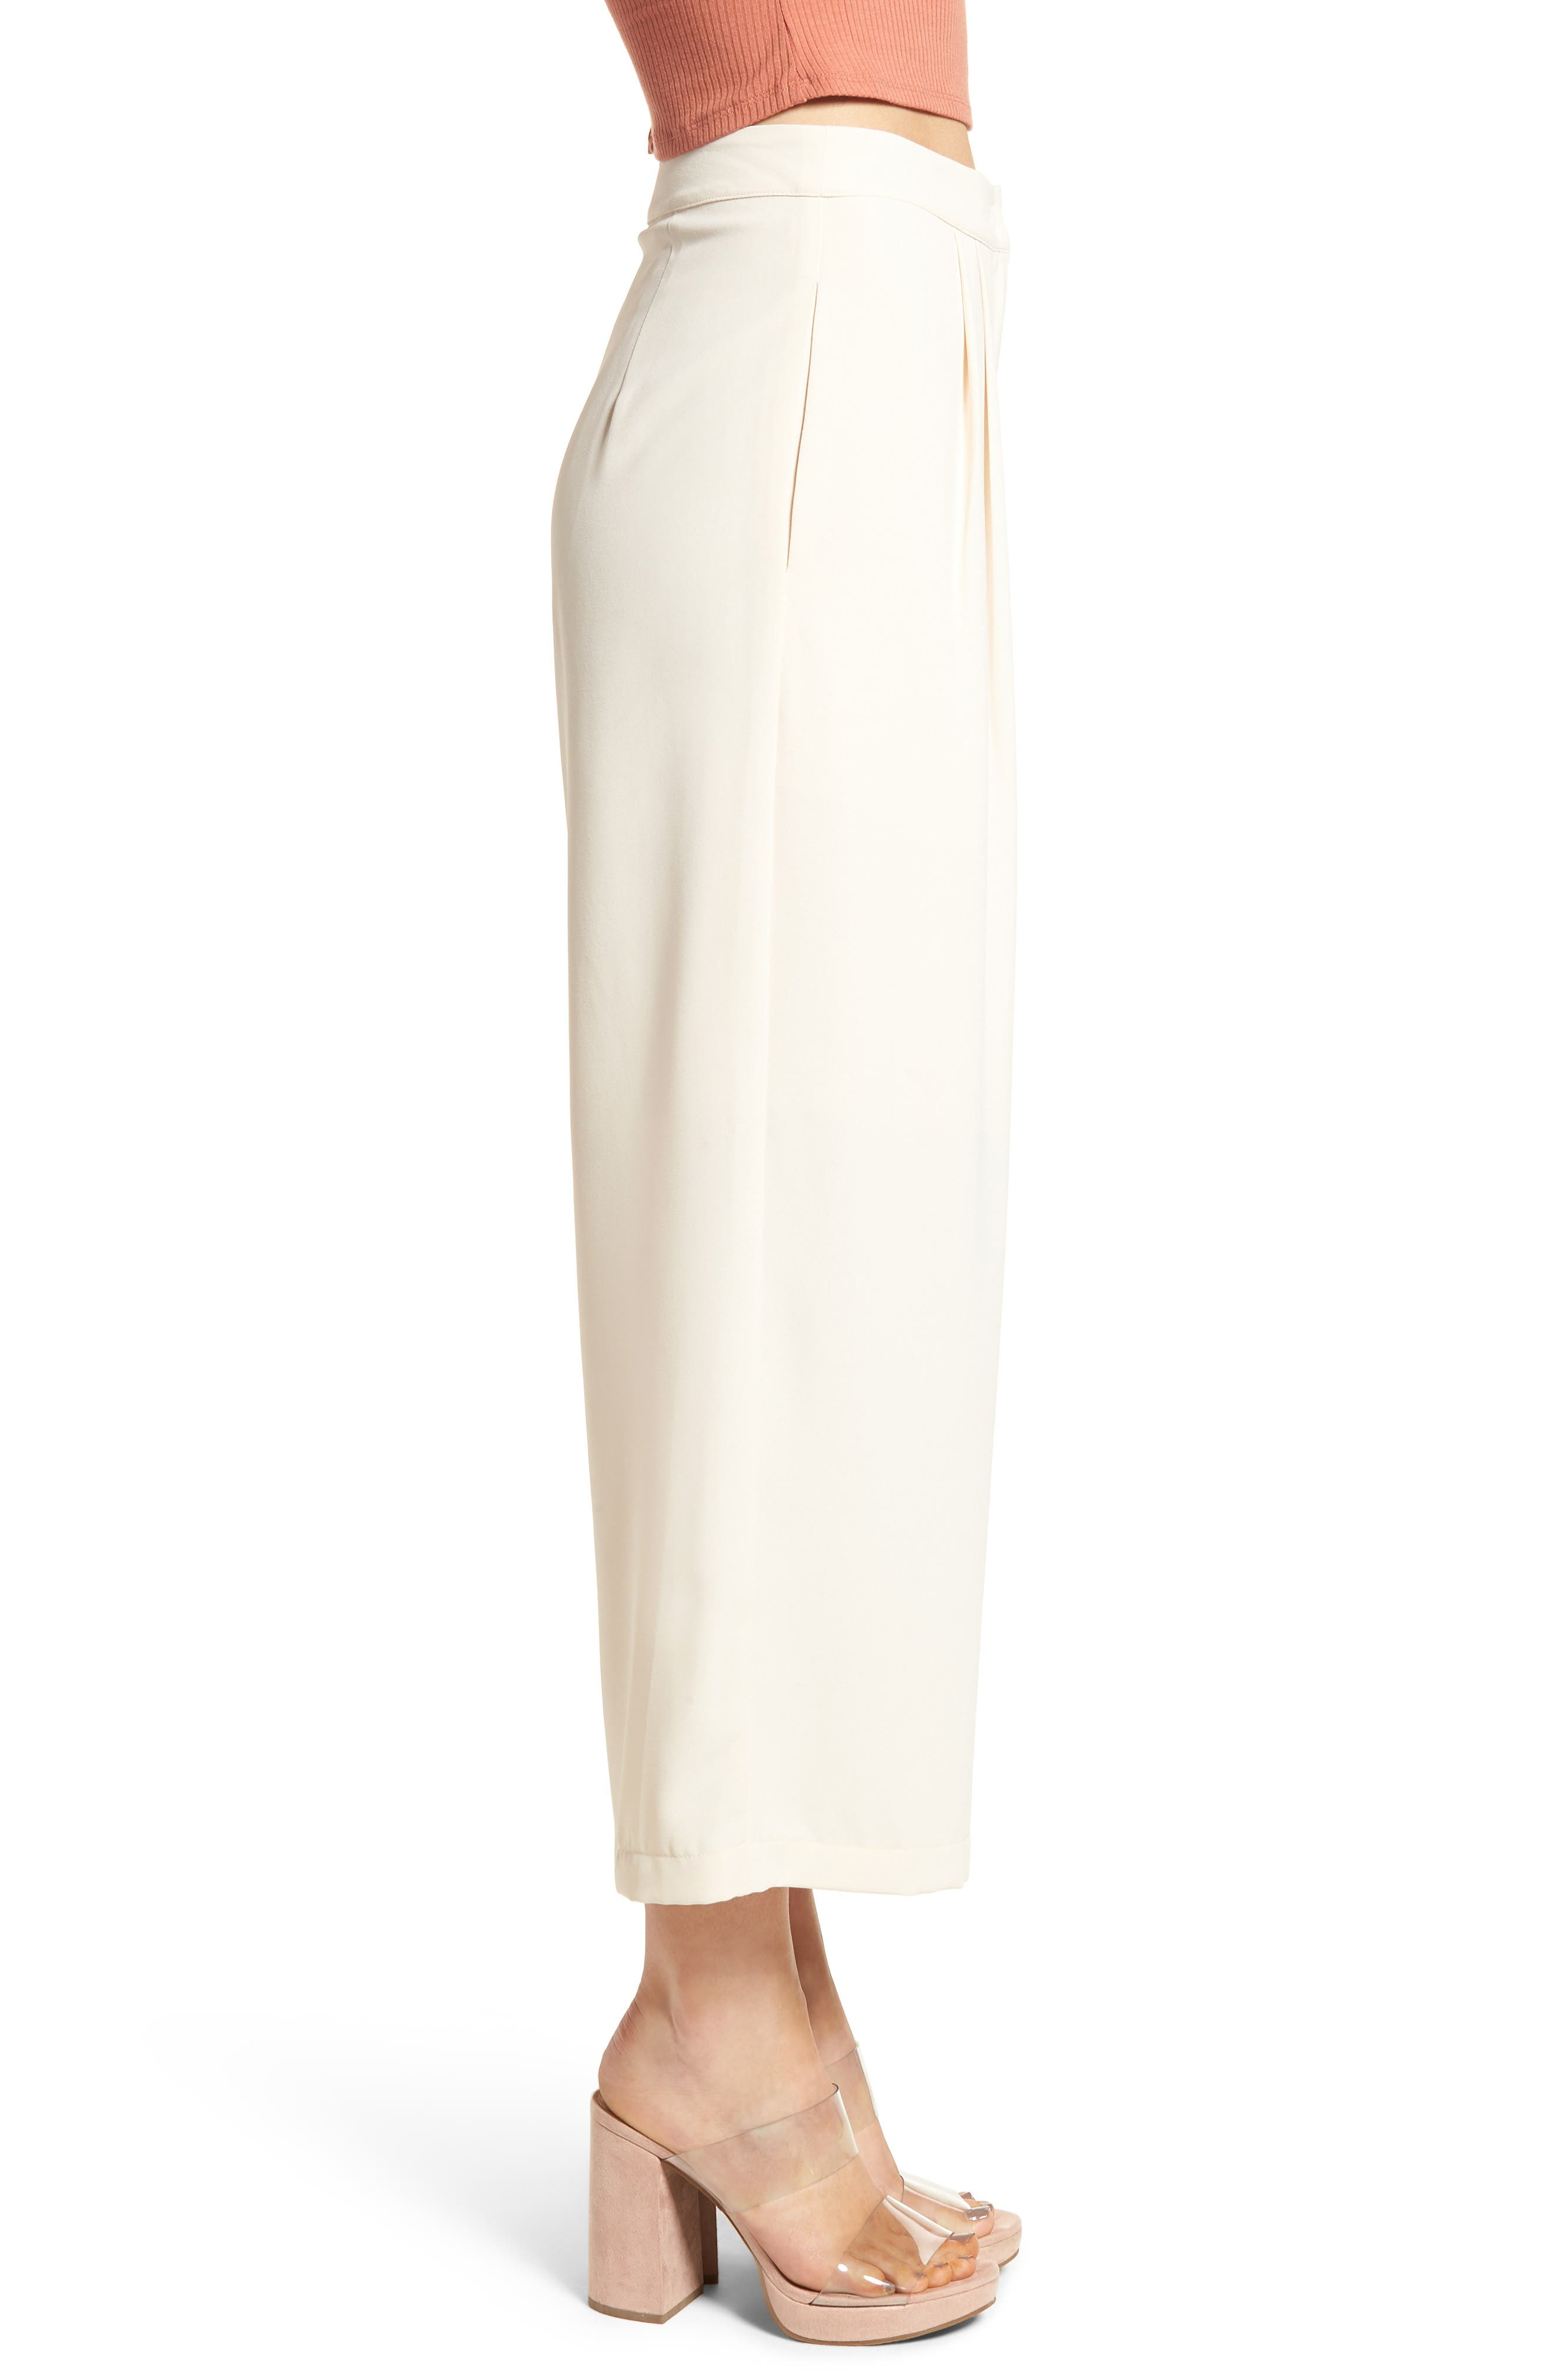 Chriselle x J.O.A. Pleat High Waist Crop Wide Leg Pants,                             Alternate thumbnail 3, color,                             650